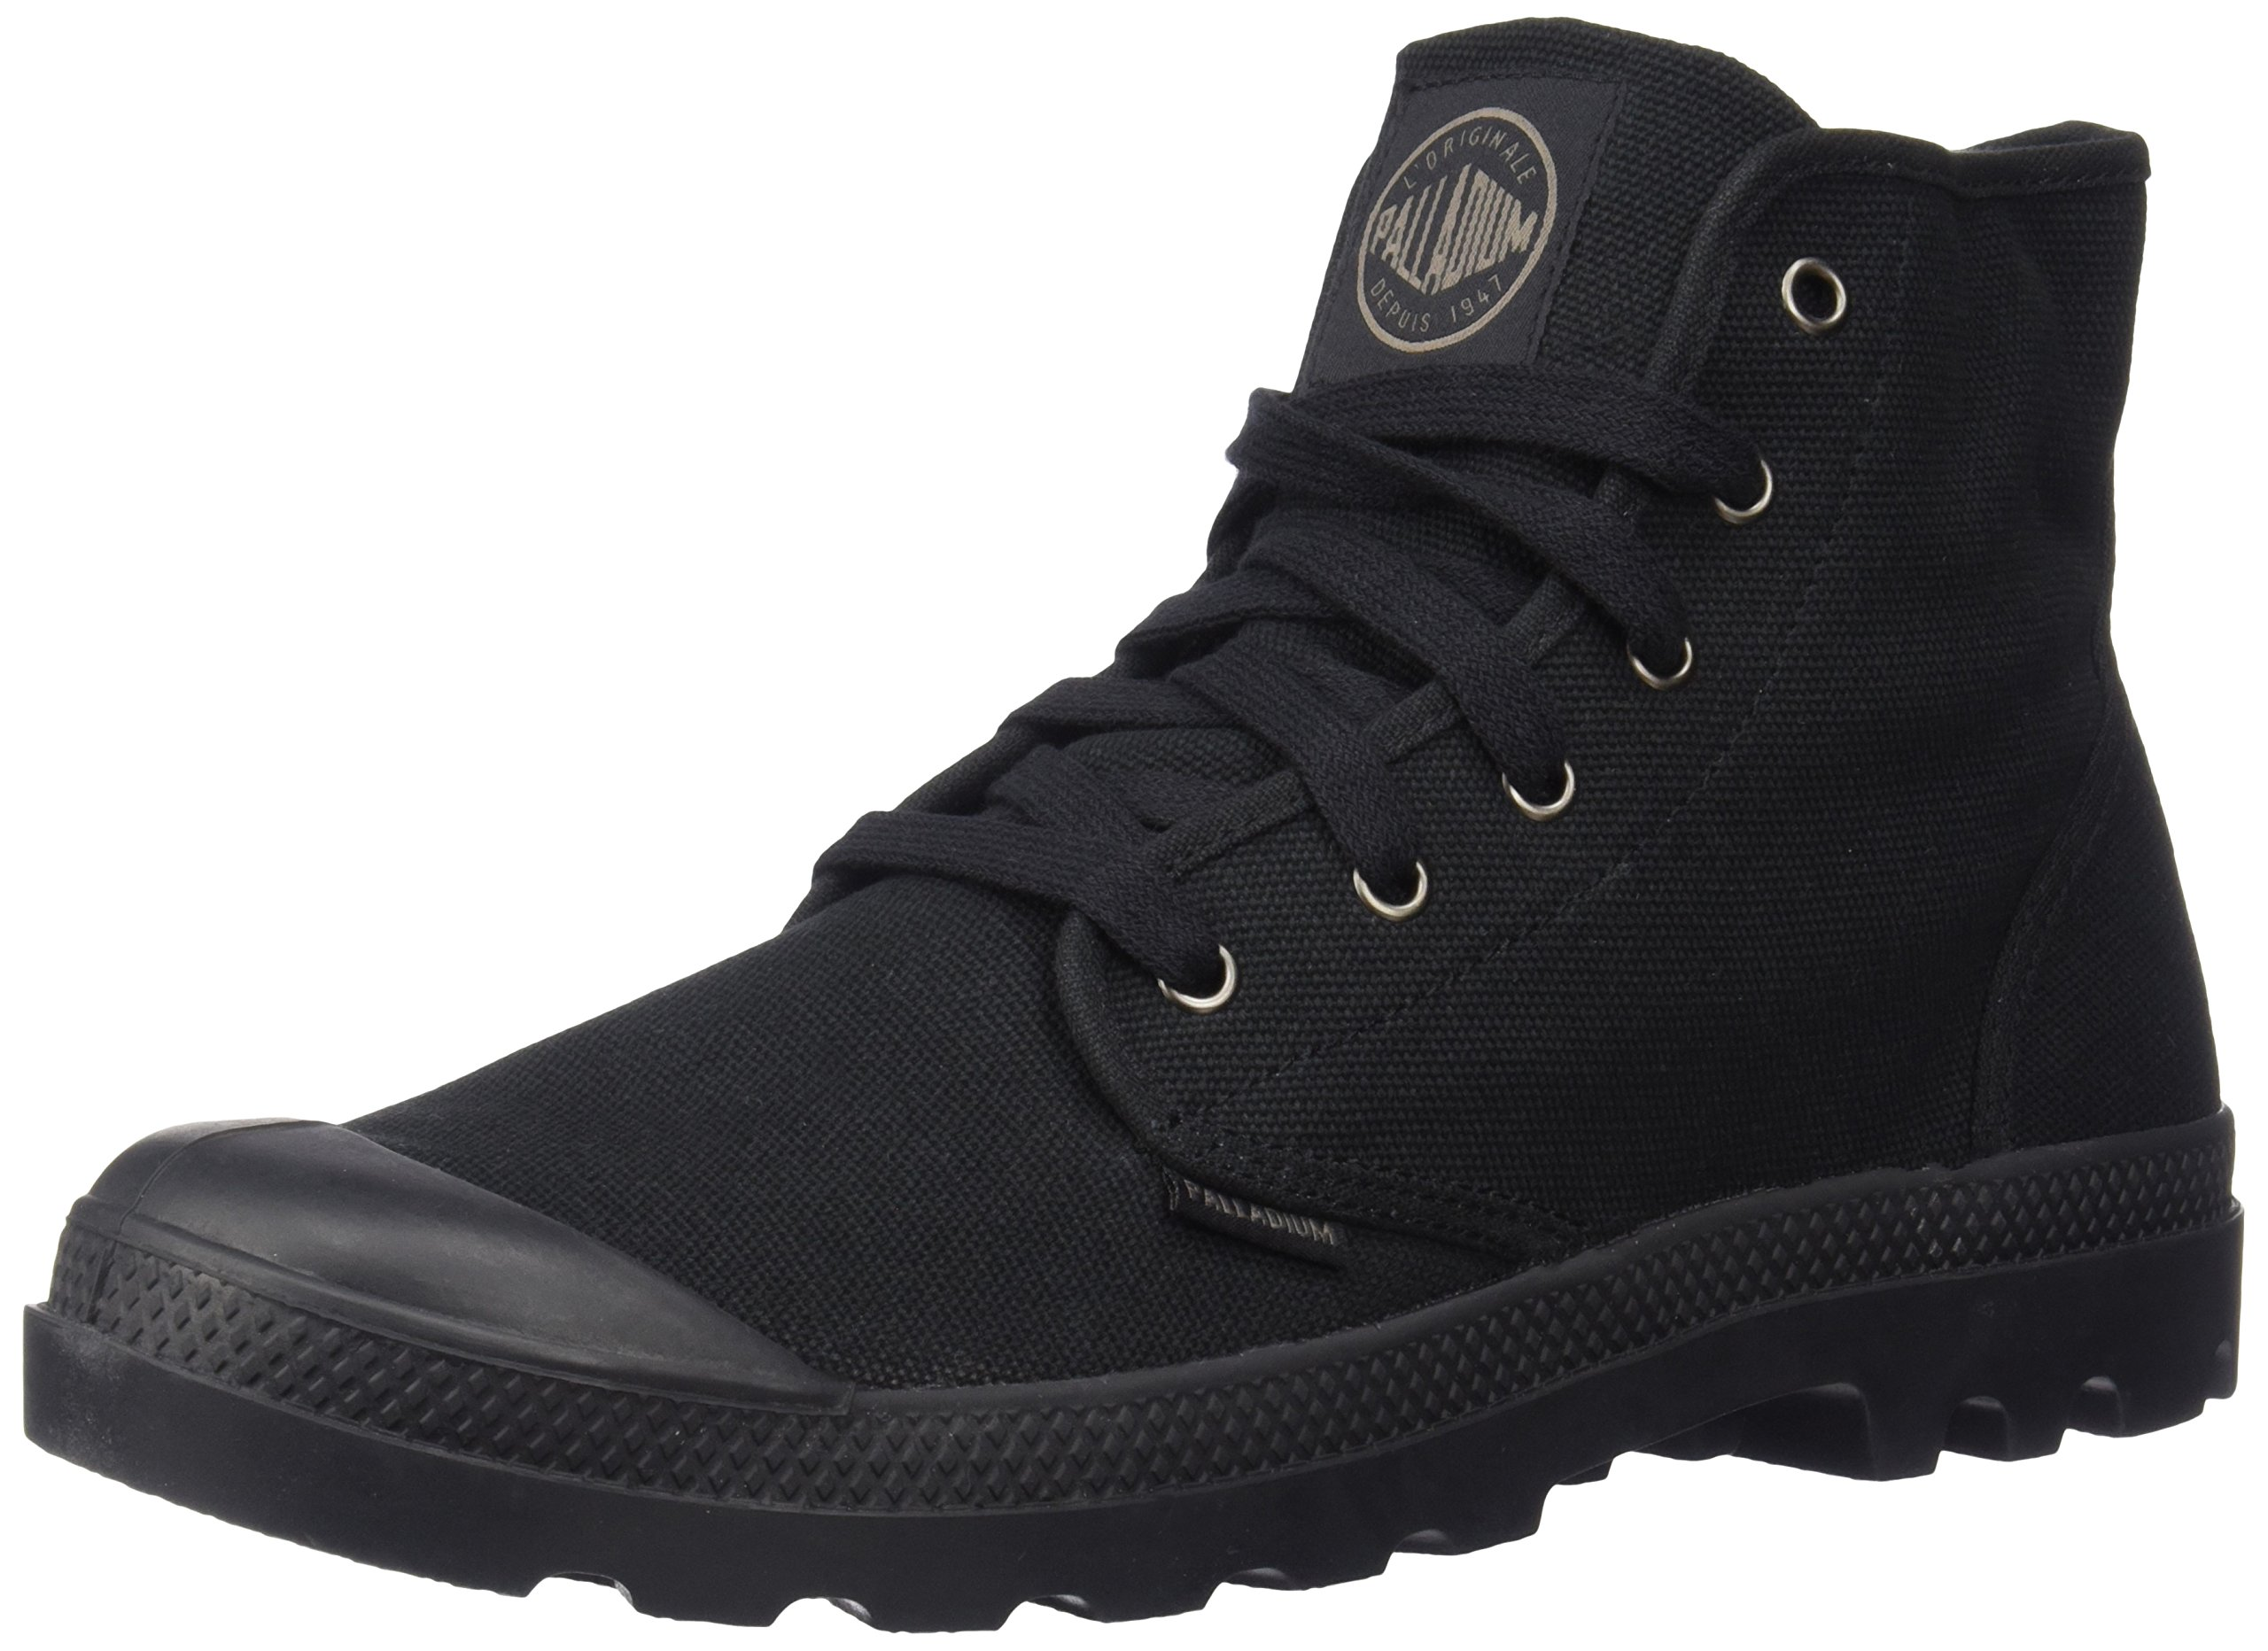 Palladium Men's Pampa Hi Canvas Boot,Black,10 M US